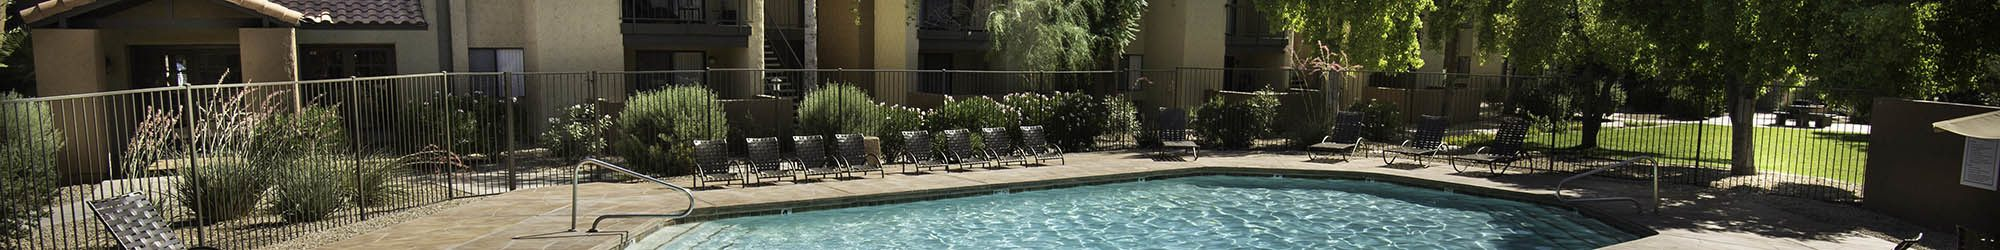 Pet friendly at the apartments for rent in Chandler